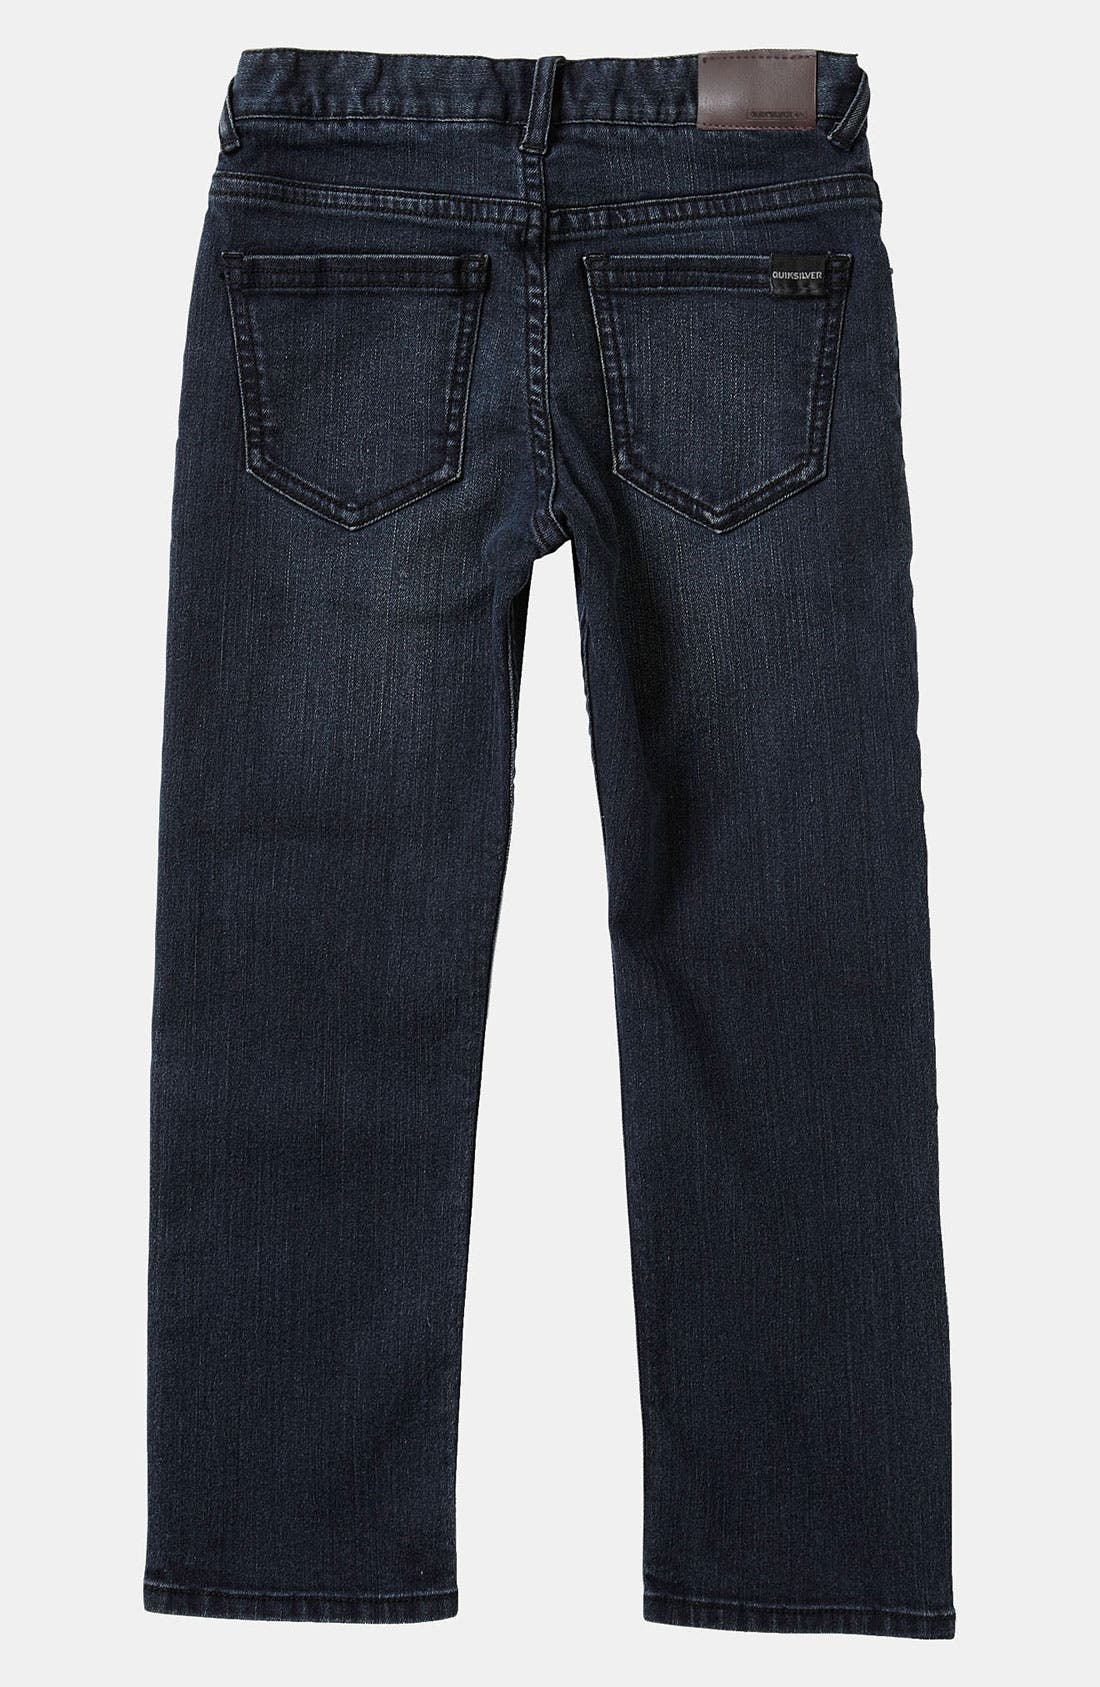 Main Image - Quiksilver 'Distortion' Jeans (Toddler)